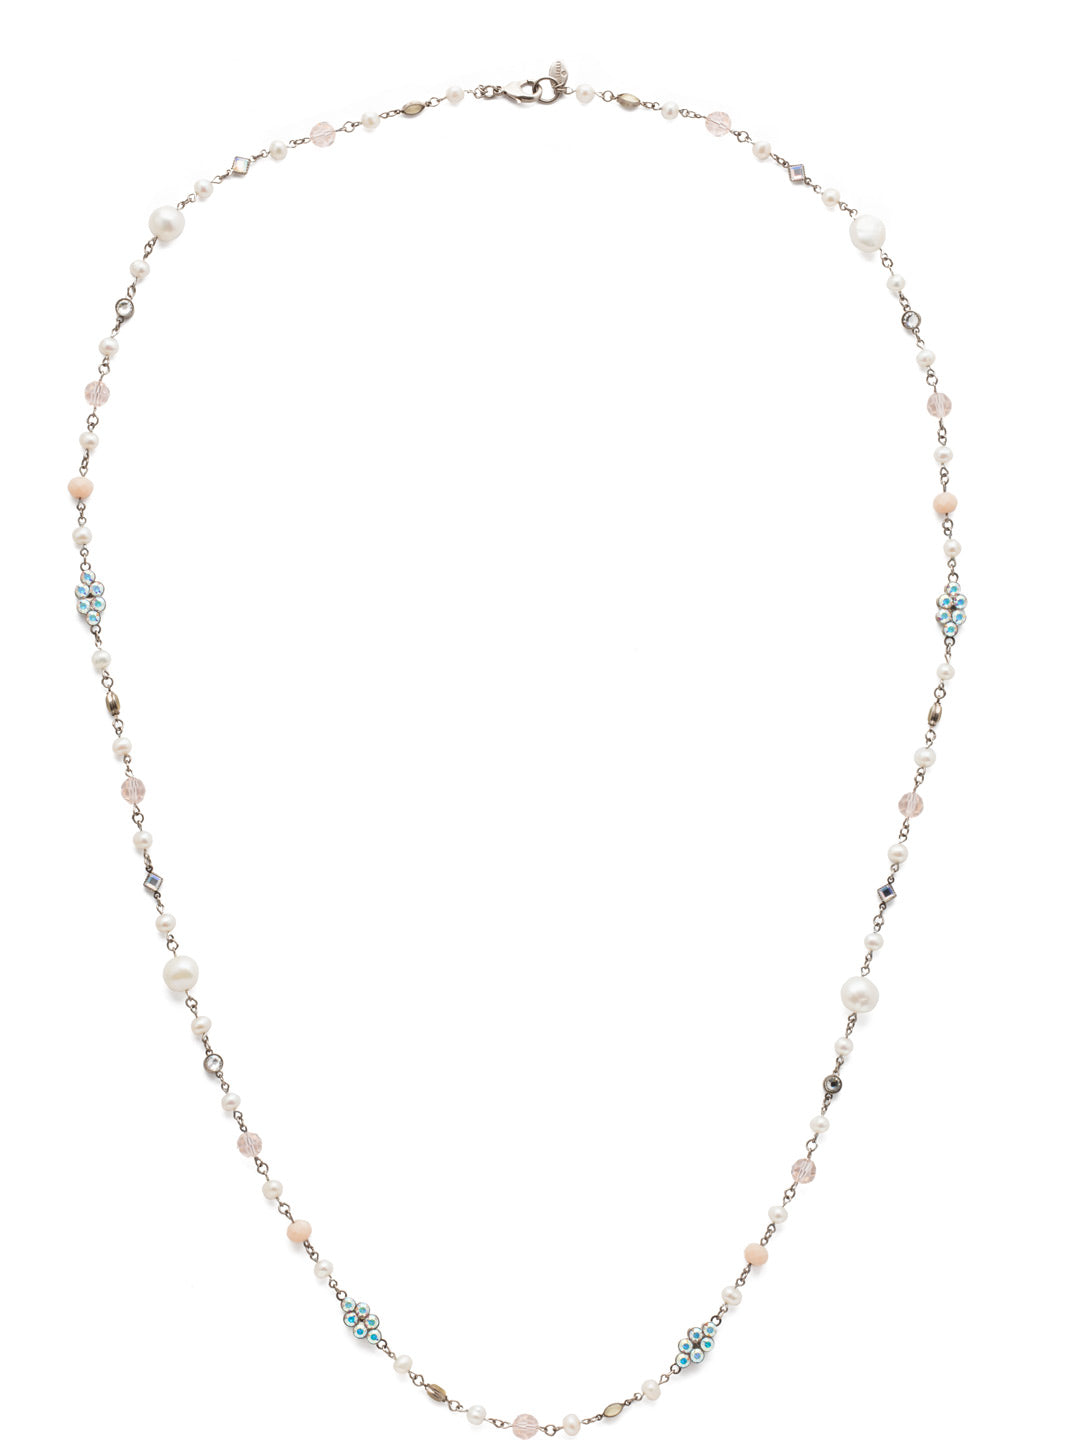 Lilliana Long Strand Necklace - NBN122ASSCL